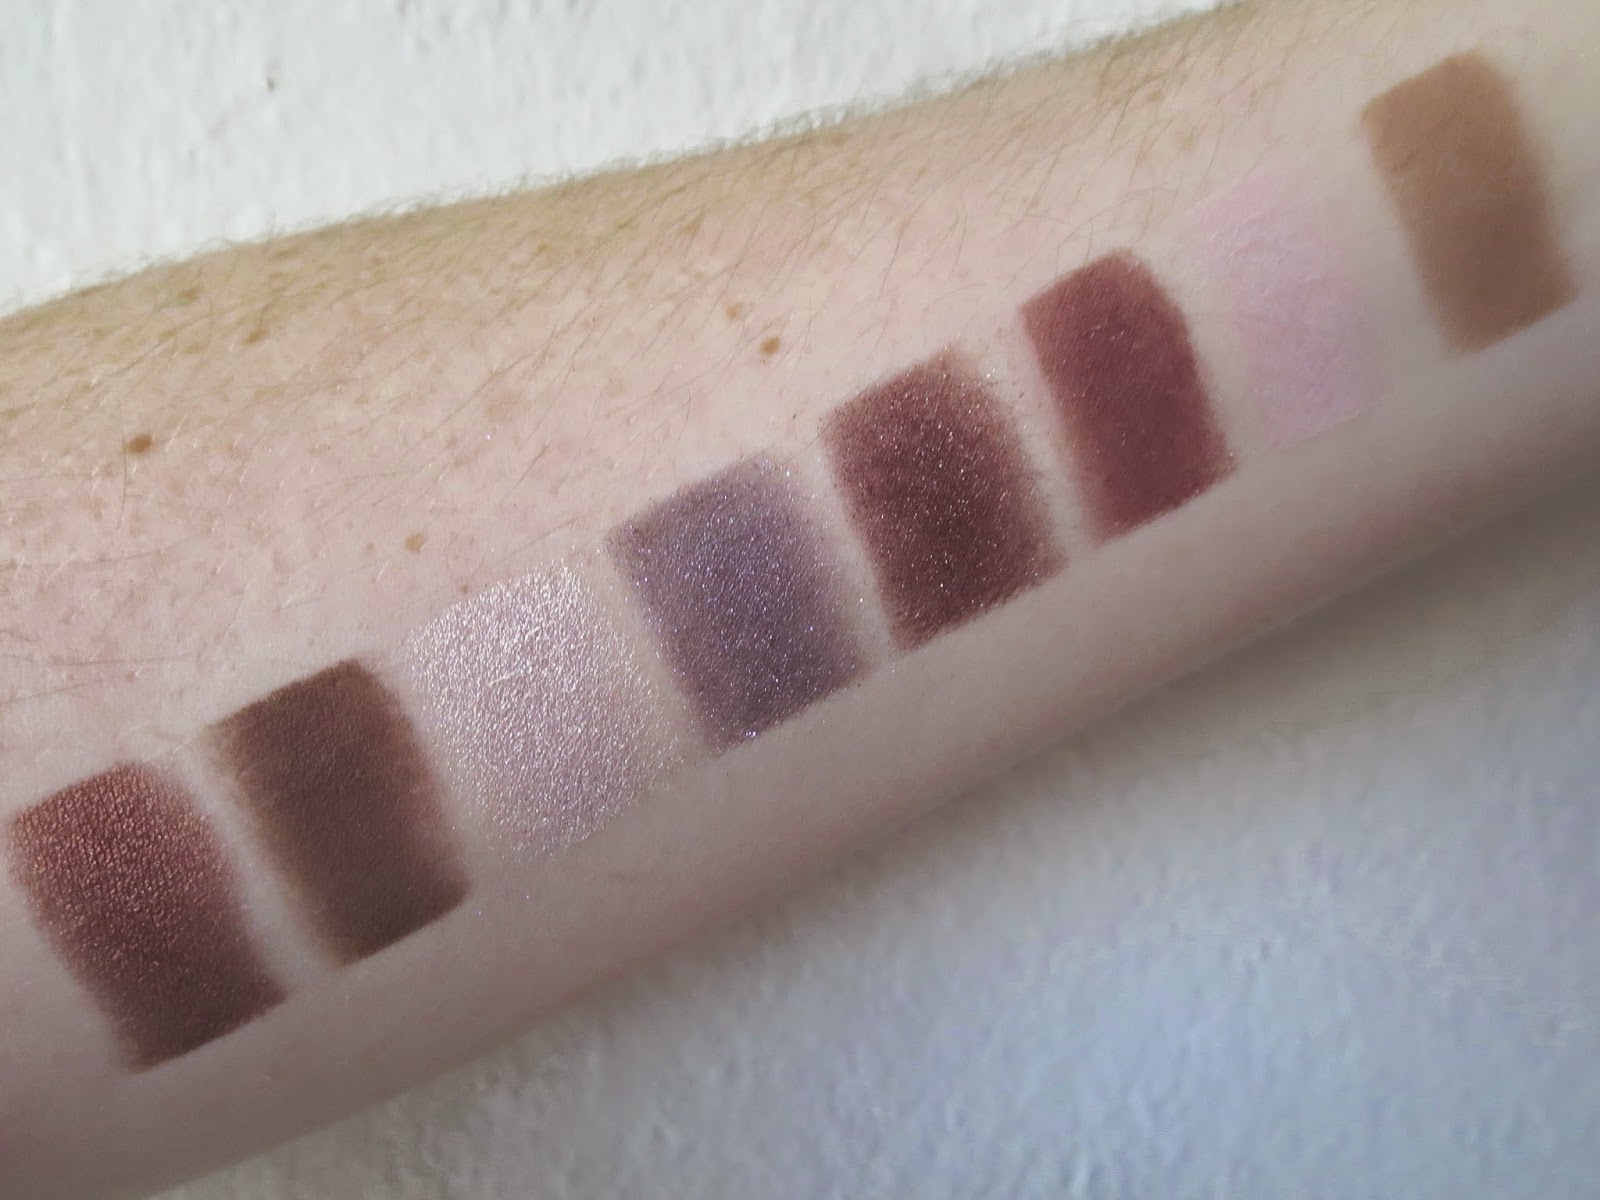 a picture of Too Faced Chocolate bar (swatch) ;  Amaretto, Triple Fudge, Champagne Truffle, Candied Violet, Black Forest Truffle, Cherry Cordial, Strawberry Bon Bon, Milk Chocolate